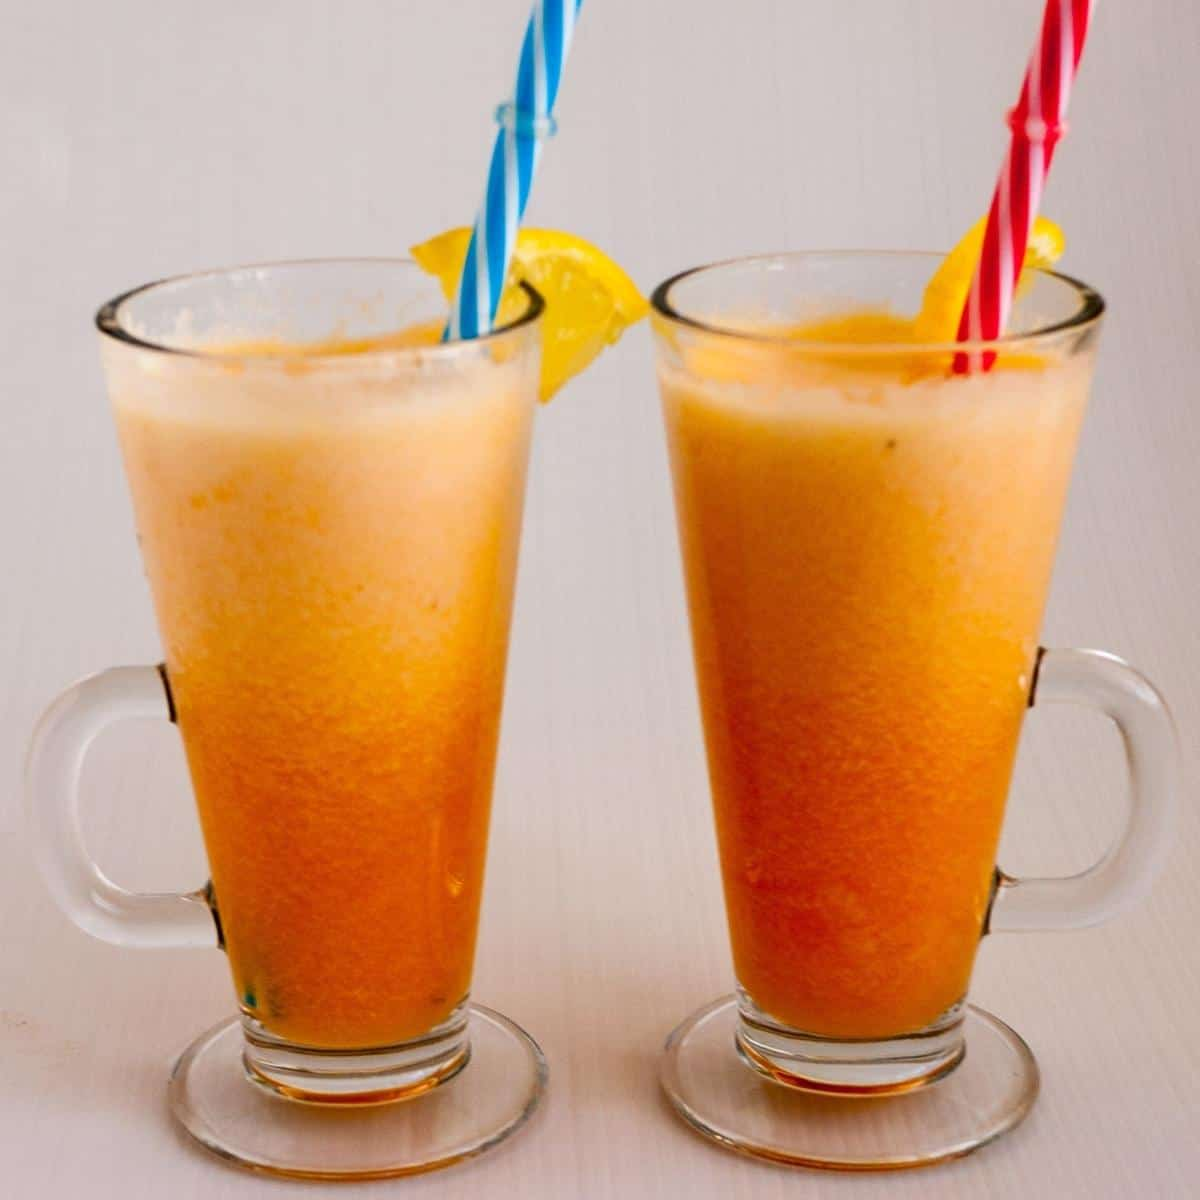 Cantaloupe Orange Smoothie Veena Azmanov Nonalcoholic cantaloupe drink easter memorial day labor day 4th of july cinco de mayo mother's day mexican dinner party tailgating picnic you may unsubscribe at any time. cantaloupe orange smoothie